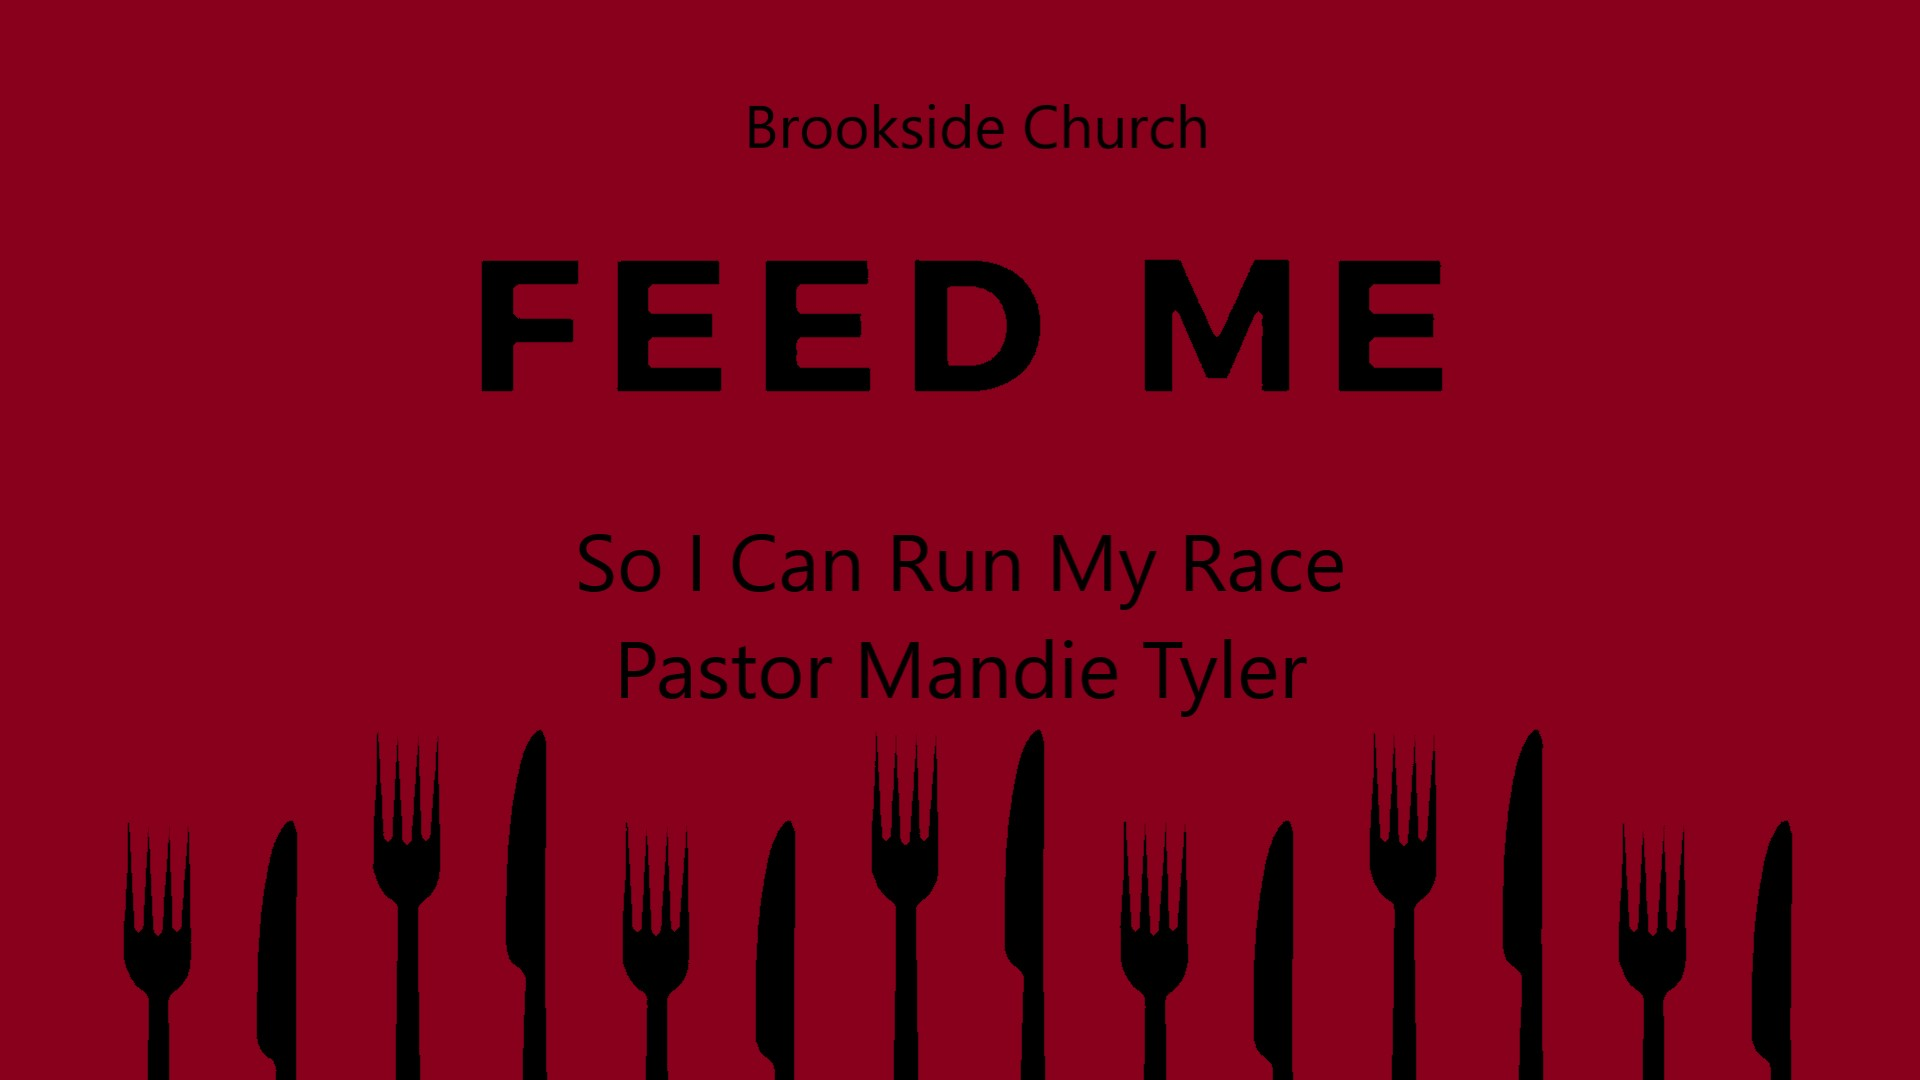 Feed Me (So I Can Run My Race)